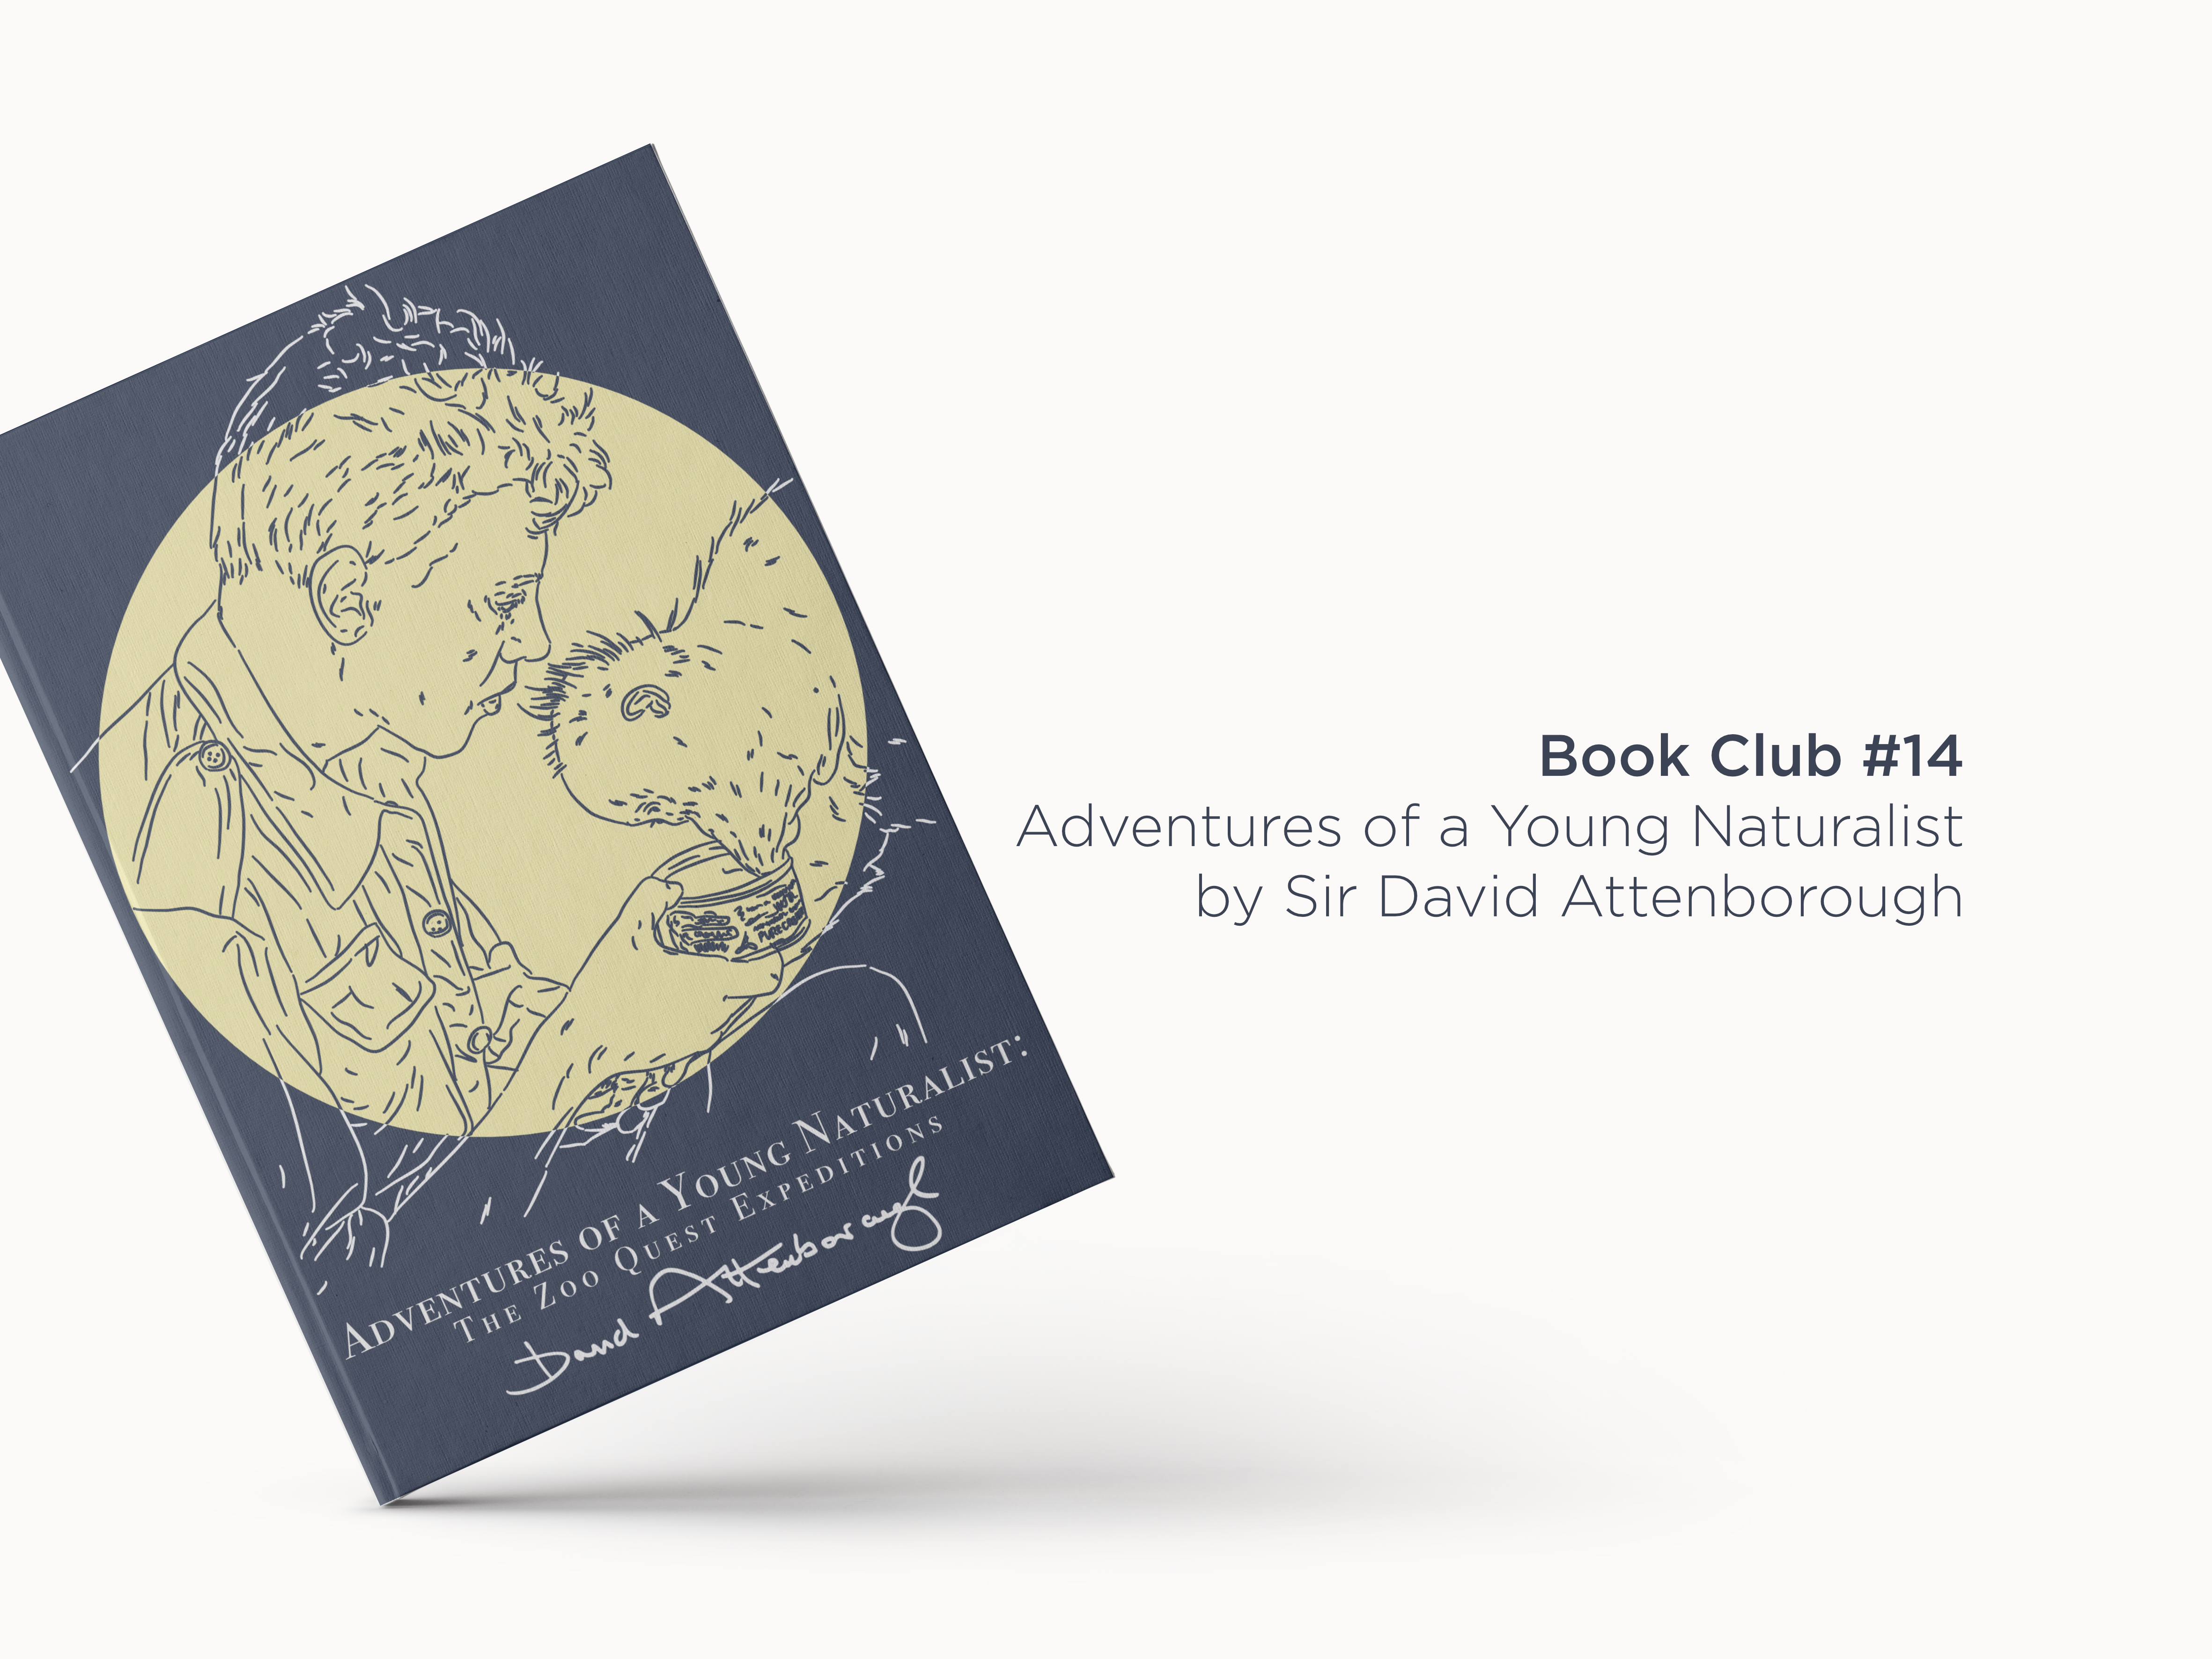 Book Club 14: Adventures of a Young Naturalist by David Attenborough